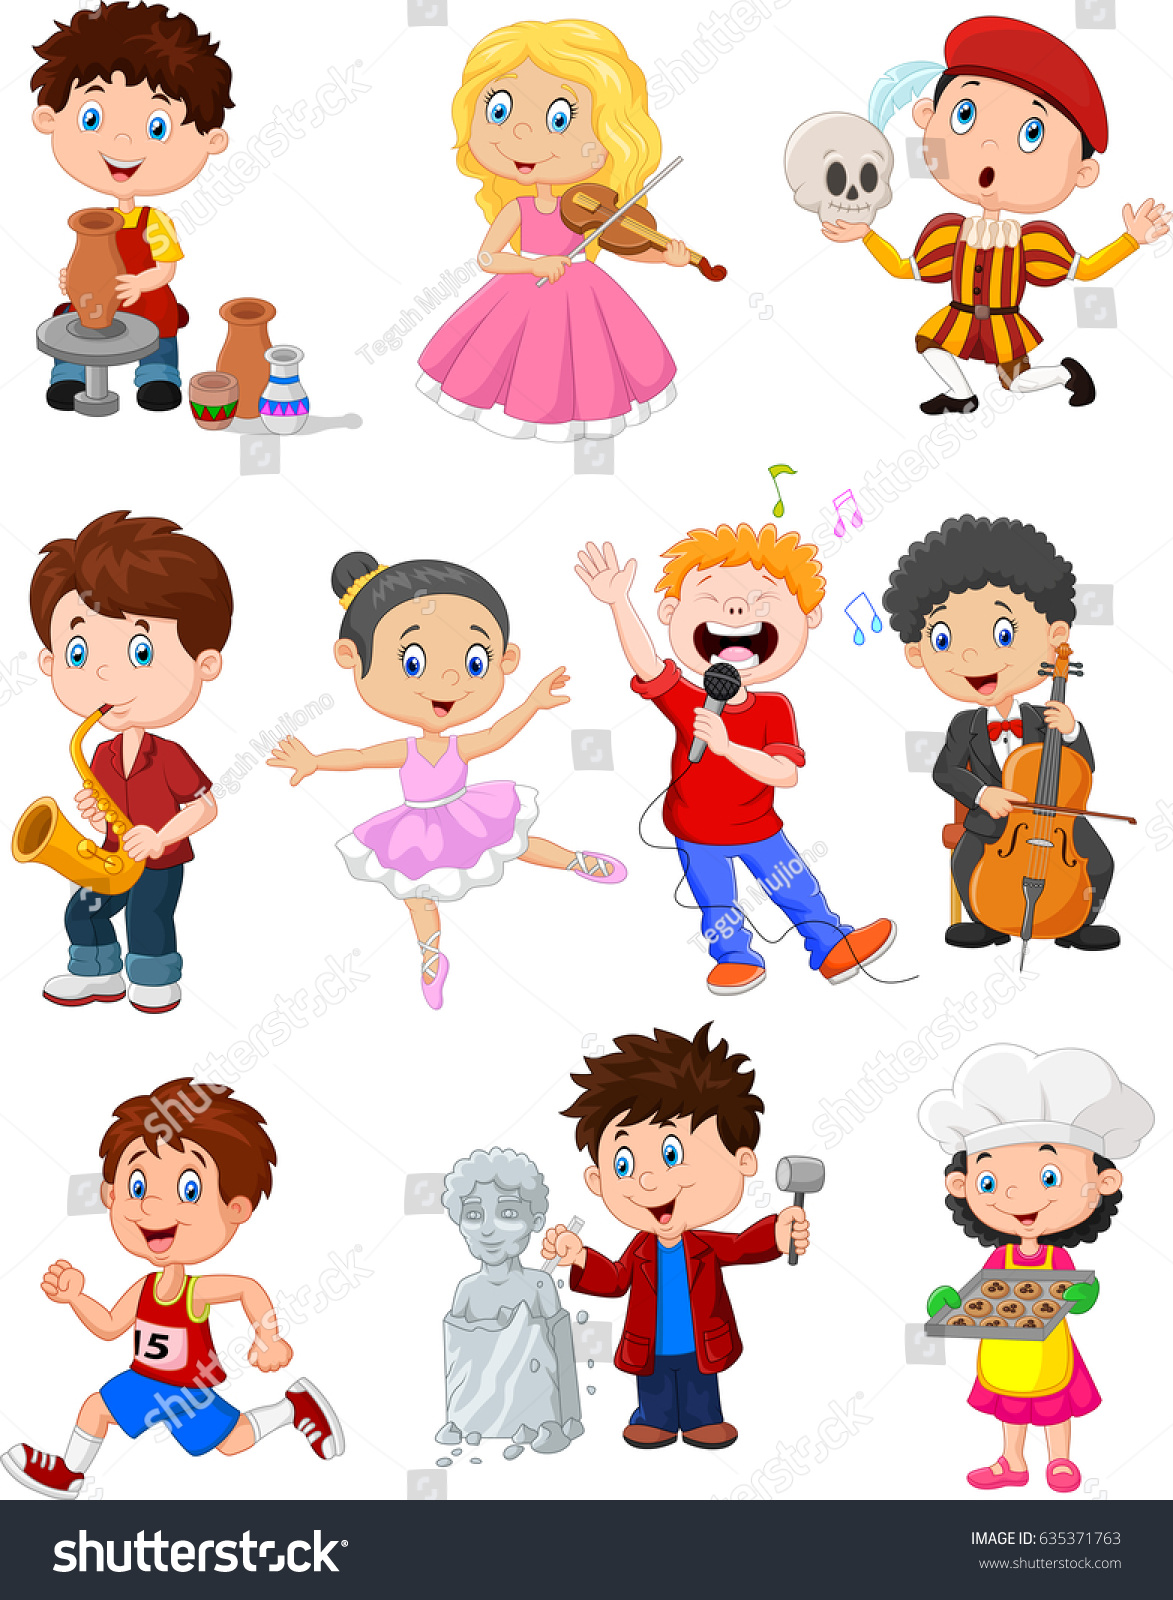 hobbies for kids. cartoon kids with different hobbies for e